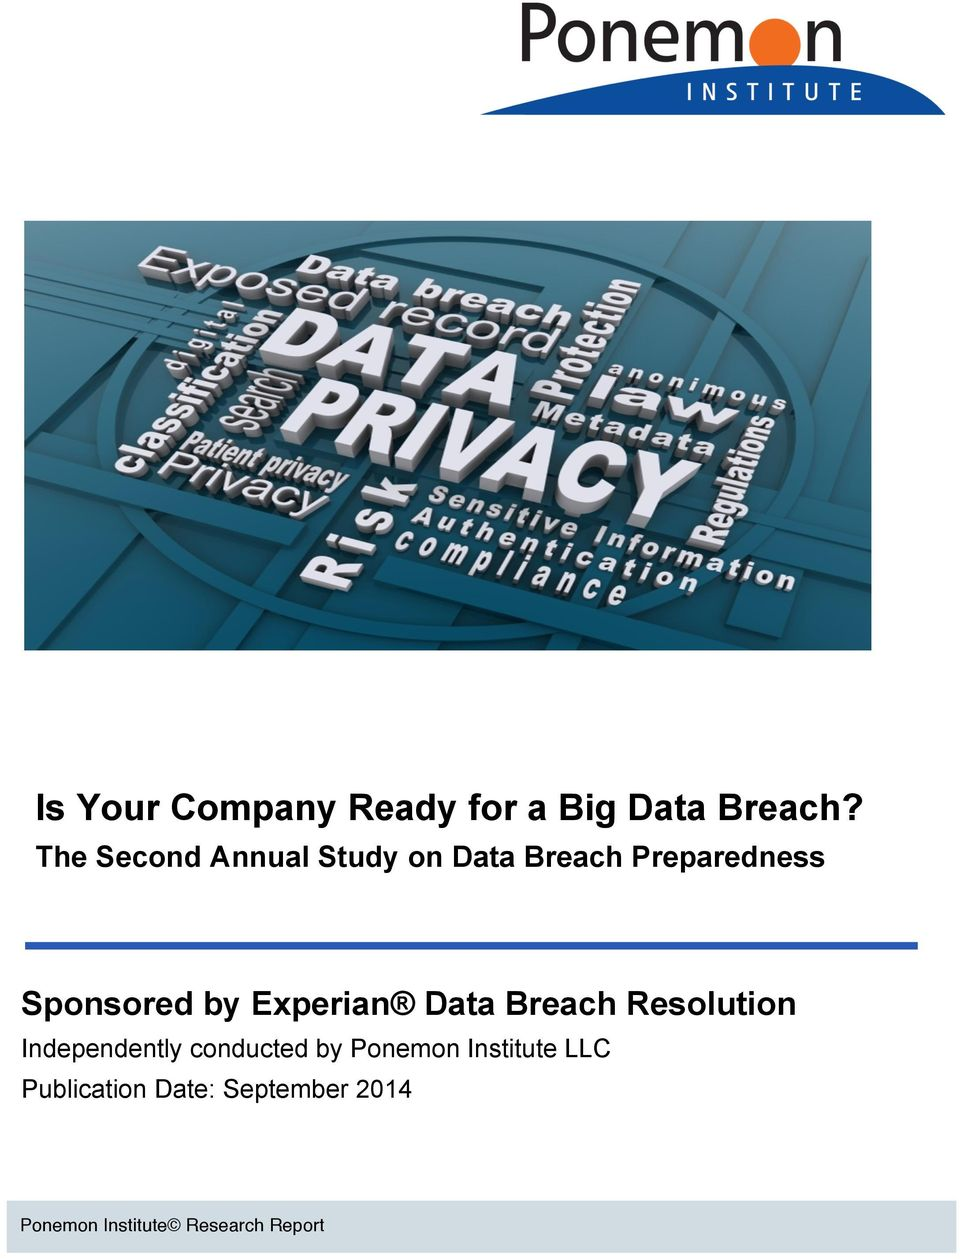 Experian Data Breach Resolution Independently conducted by